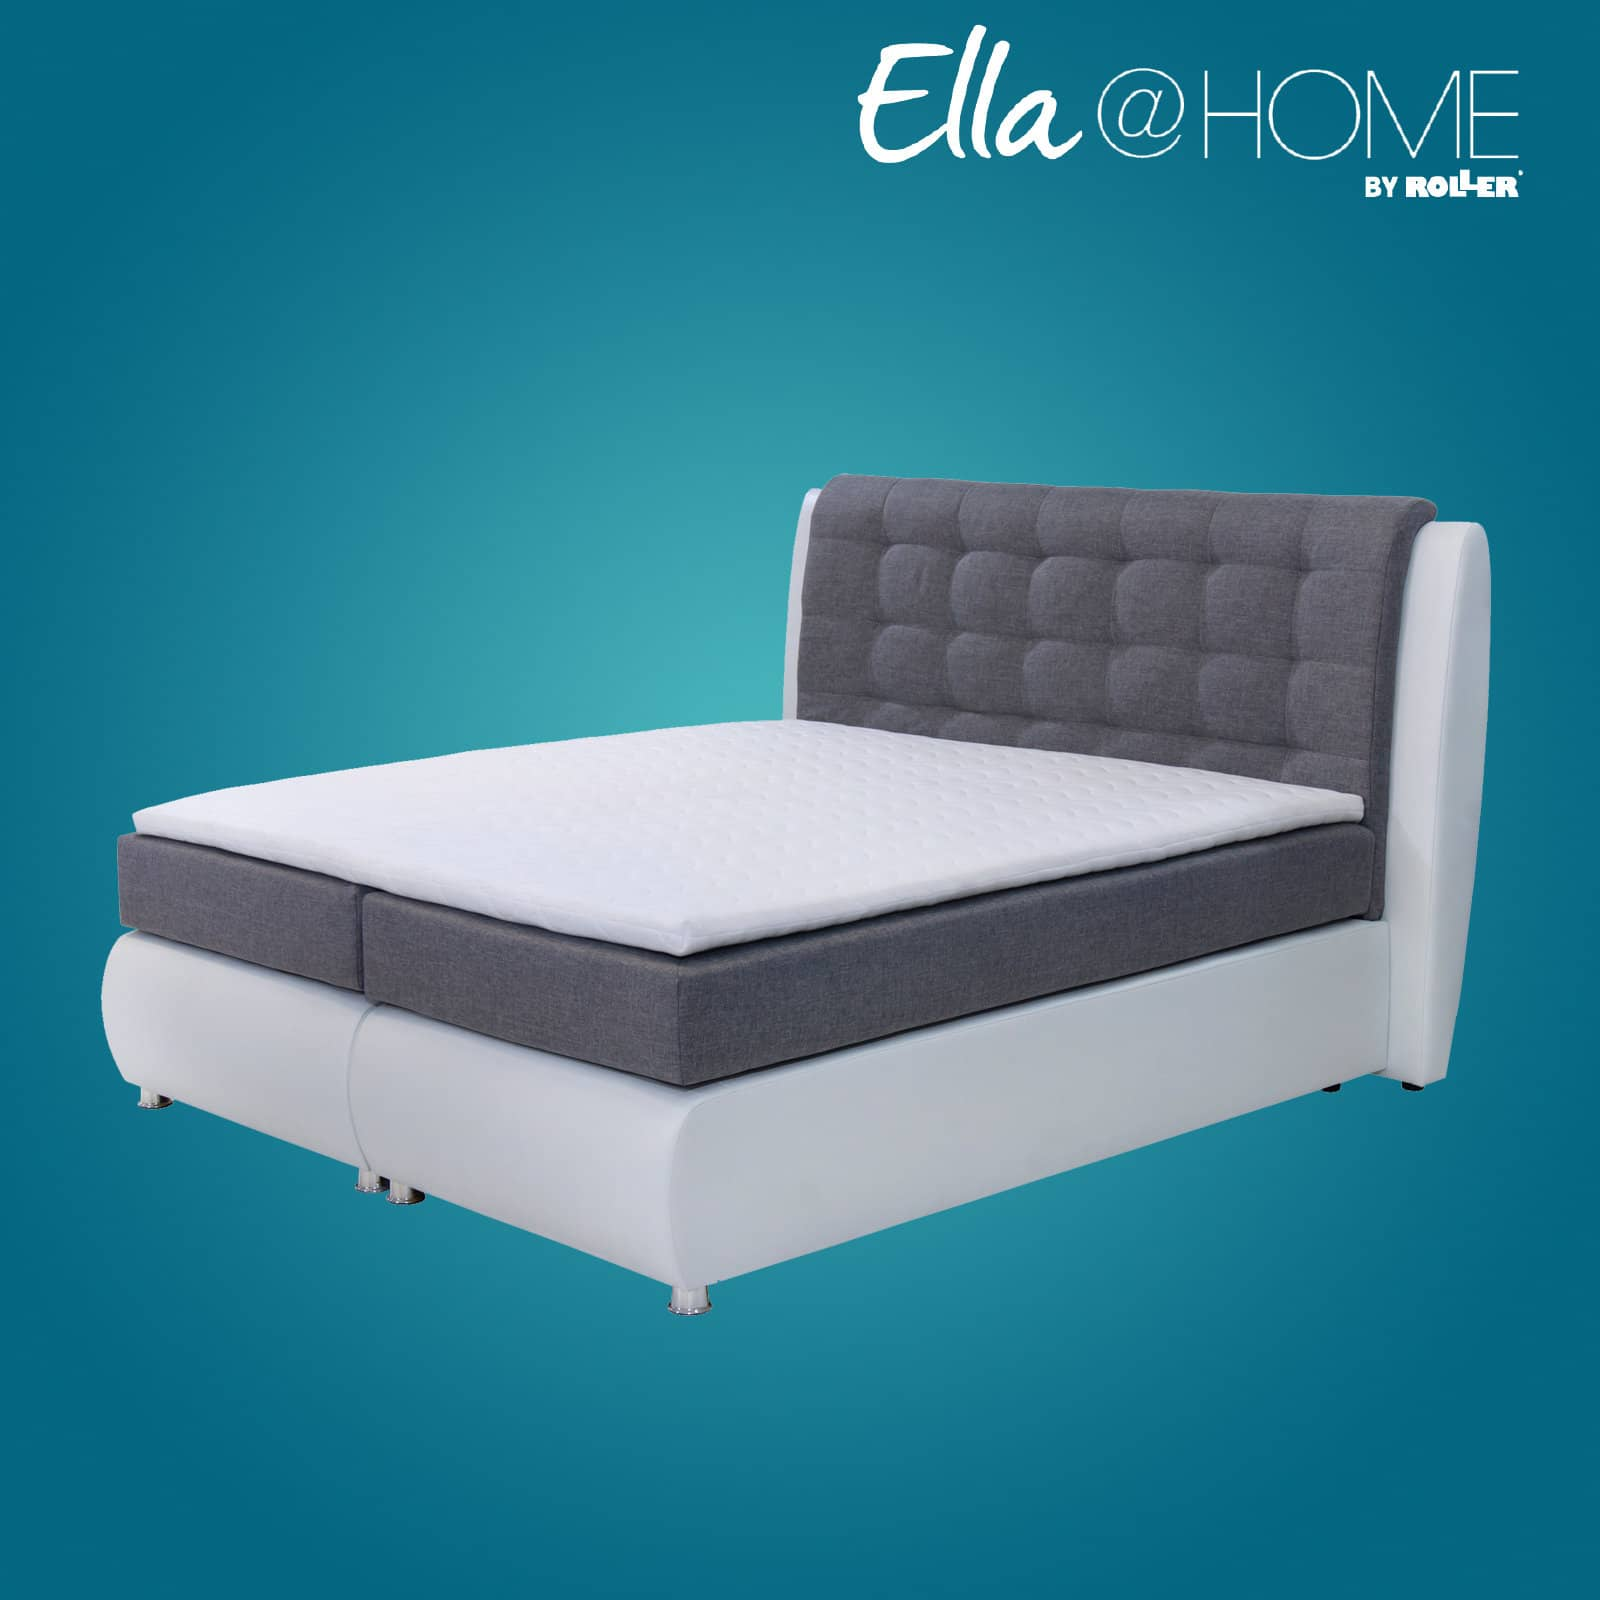 bis zu 40 sparen boxspringbett marseille von ella home. Black Bedroom Furniture Sets. Home Design Ideas